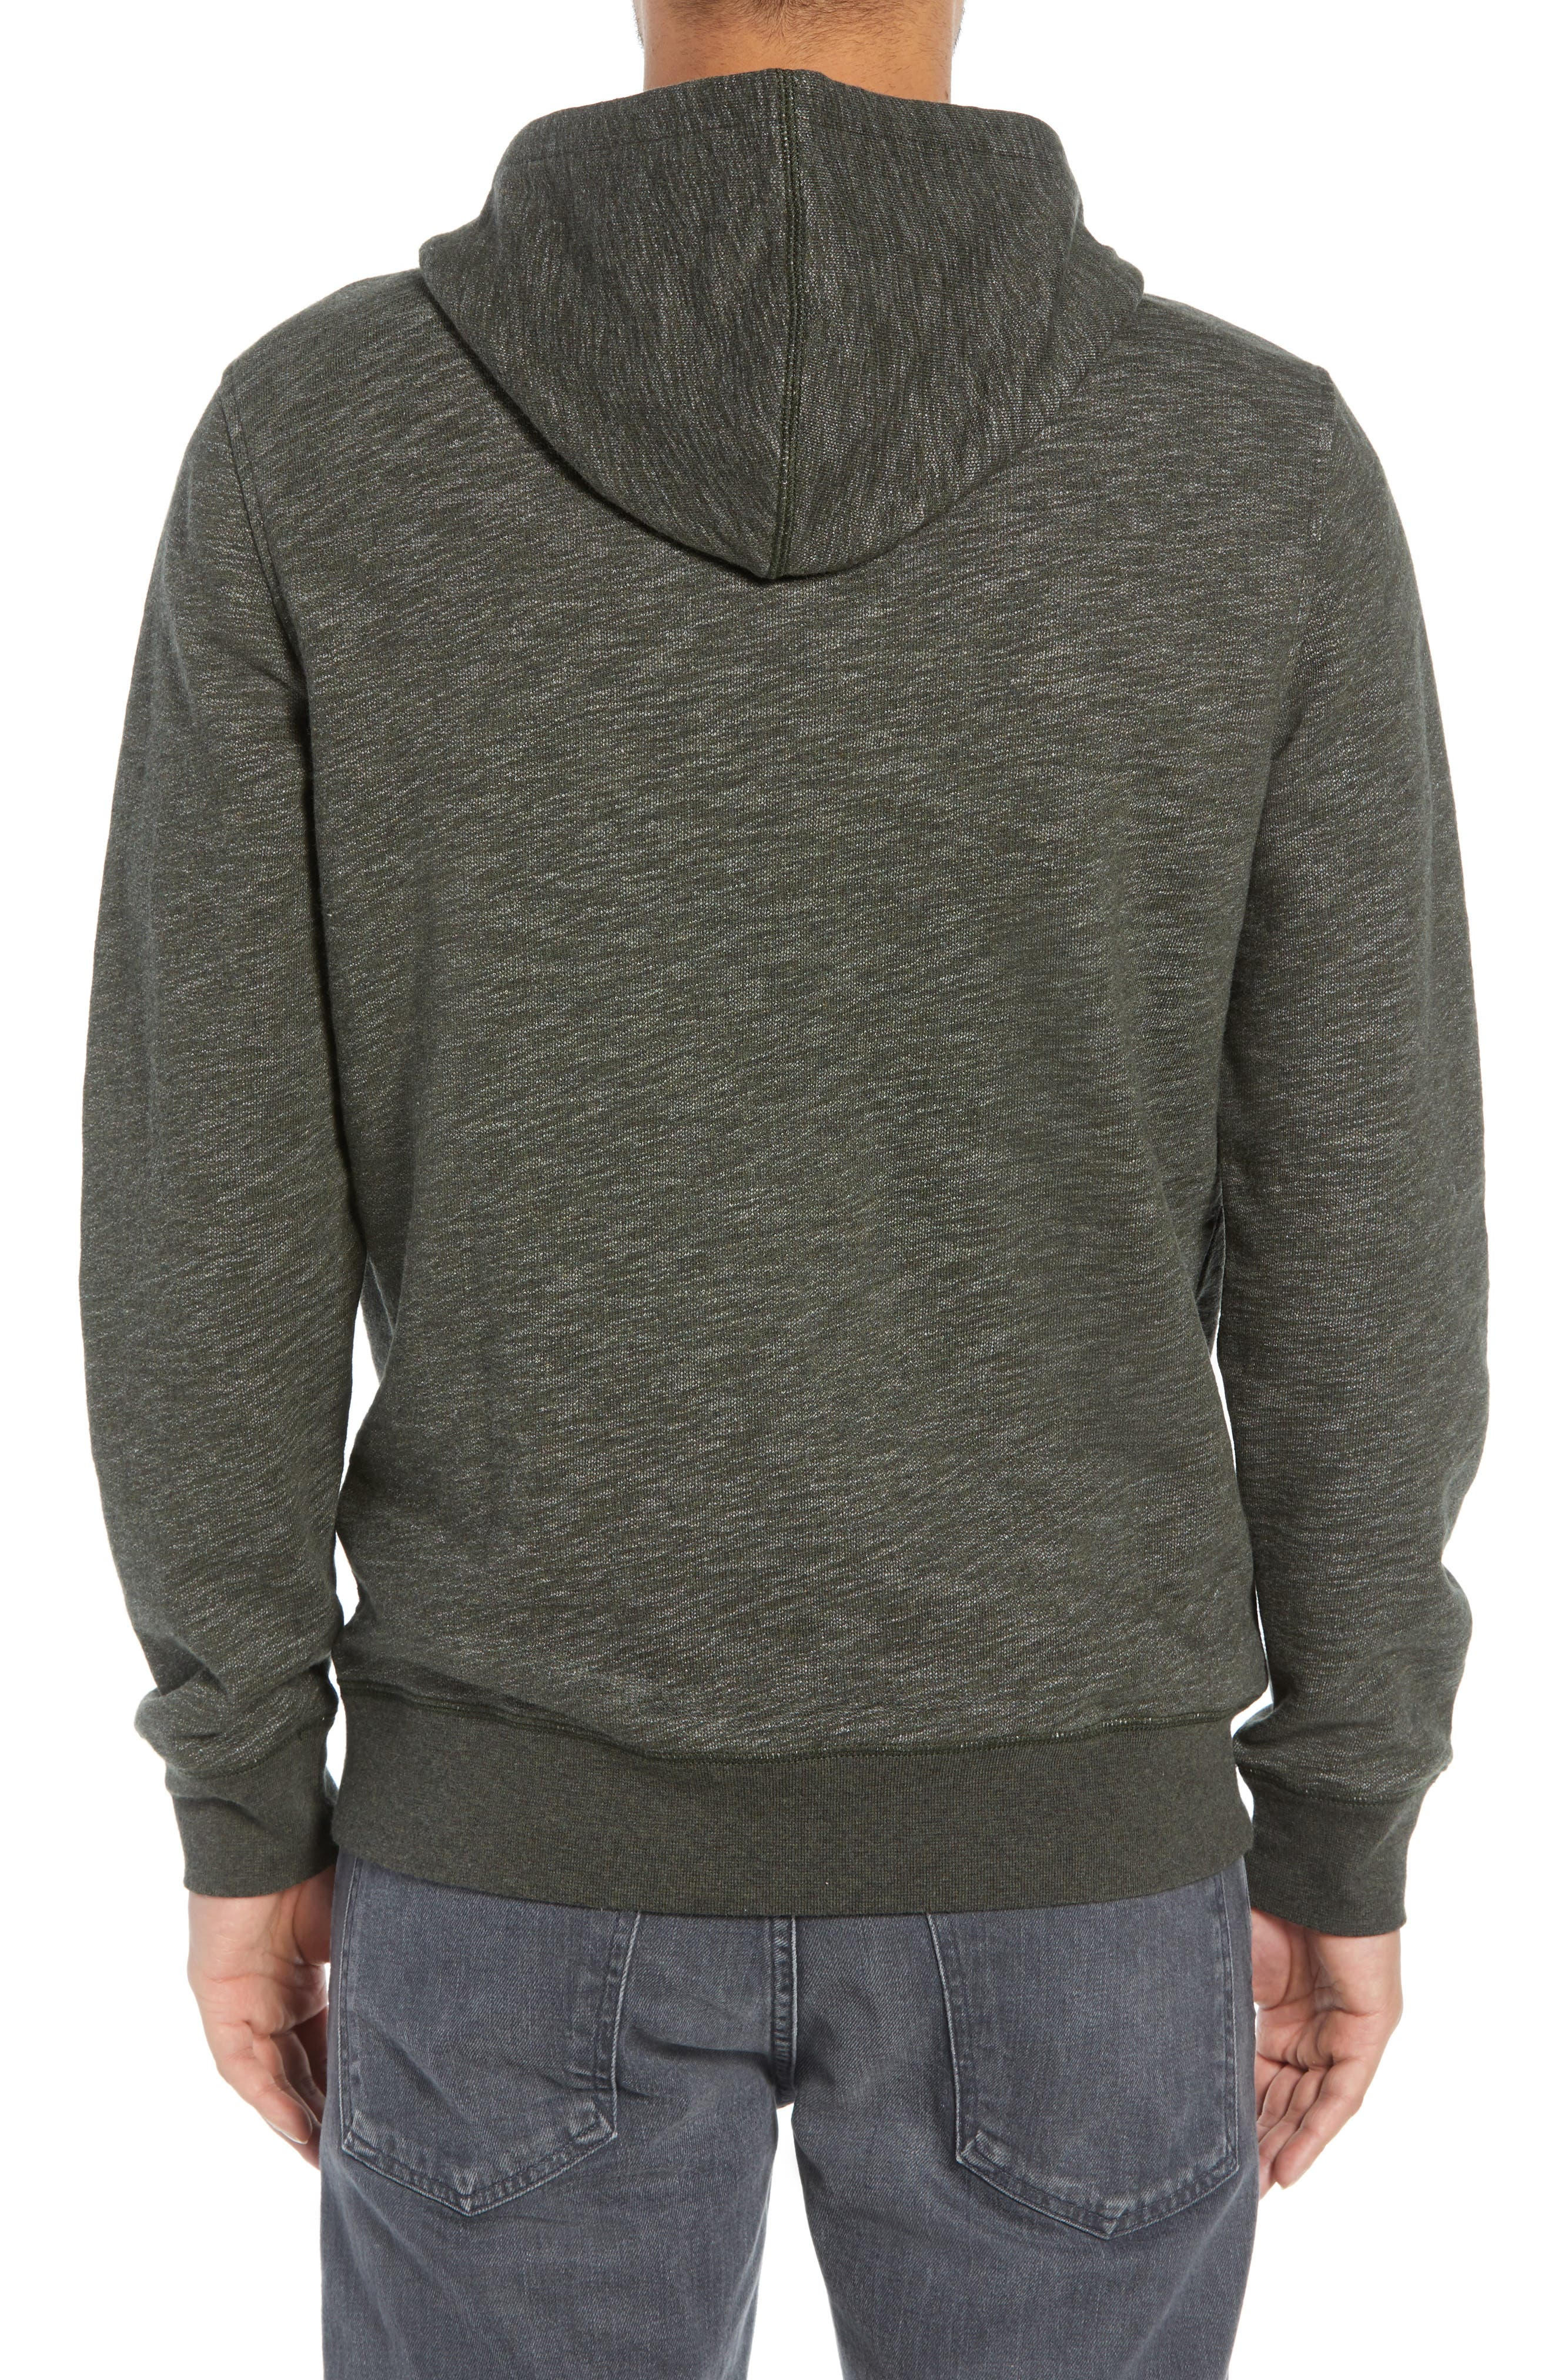 Regular Fit French Terry Pullover Hoodie,                             Alternate thumbnail 2, color,                             OLIVE DARK HEATHER